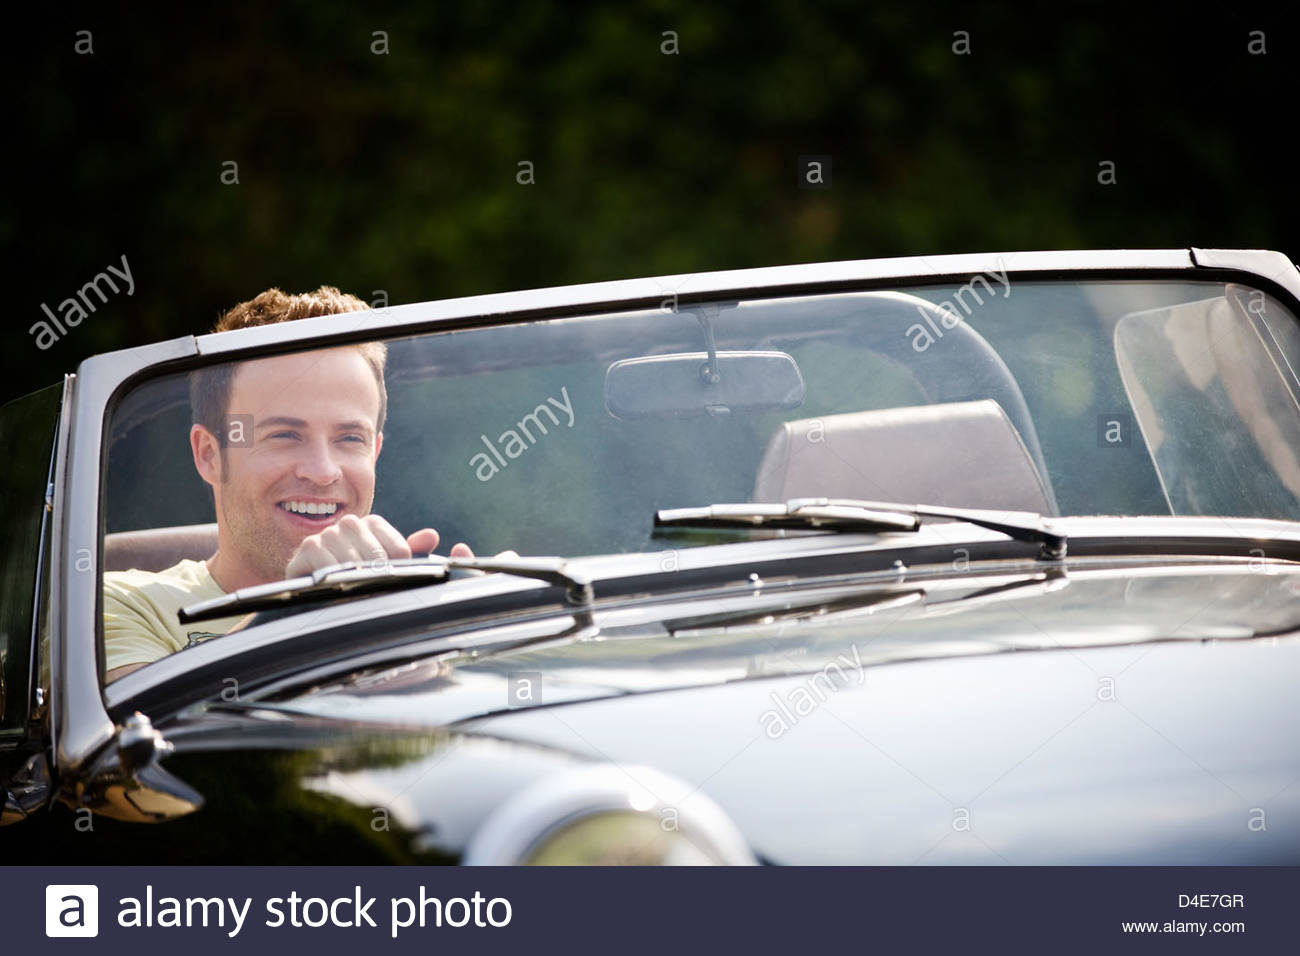 A young man driving a black sports car - Stock Image